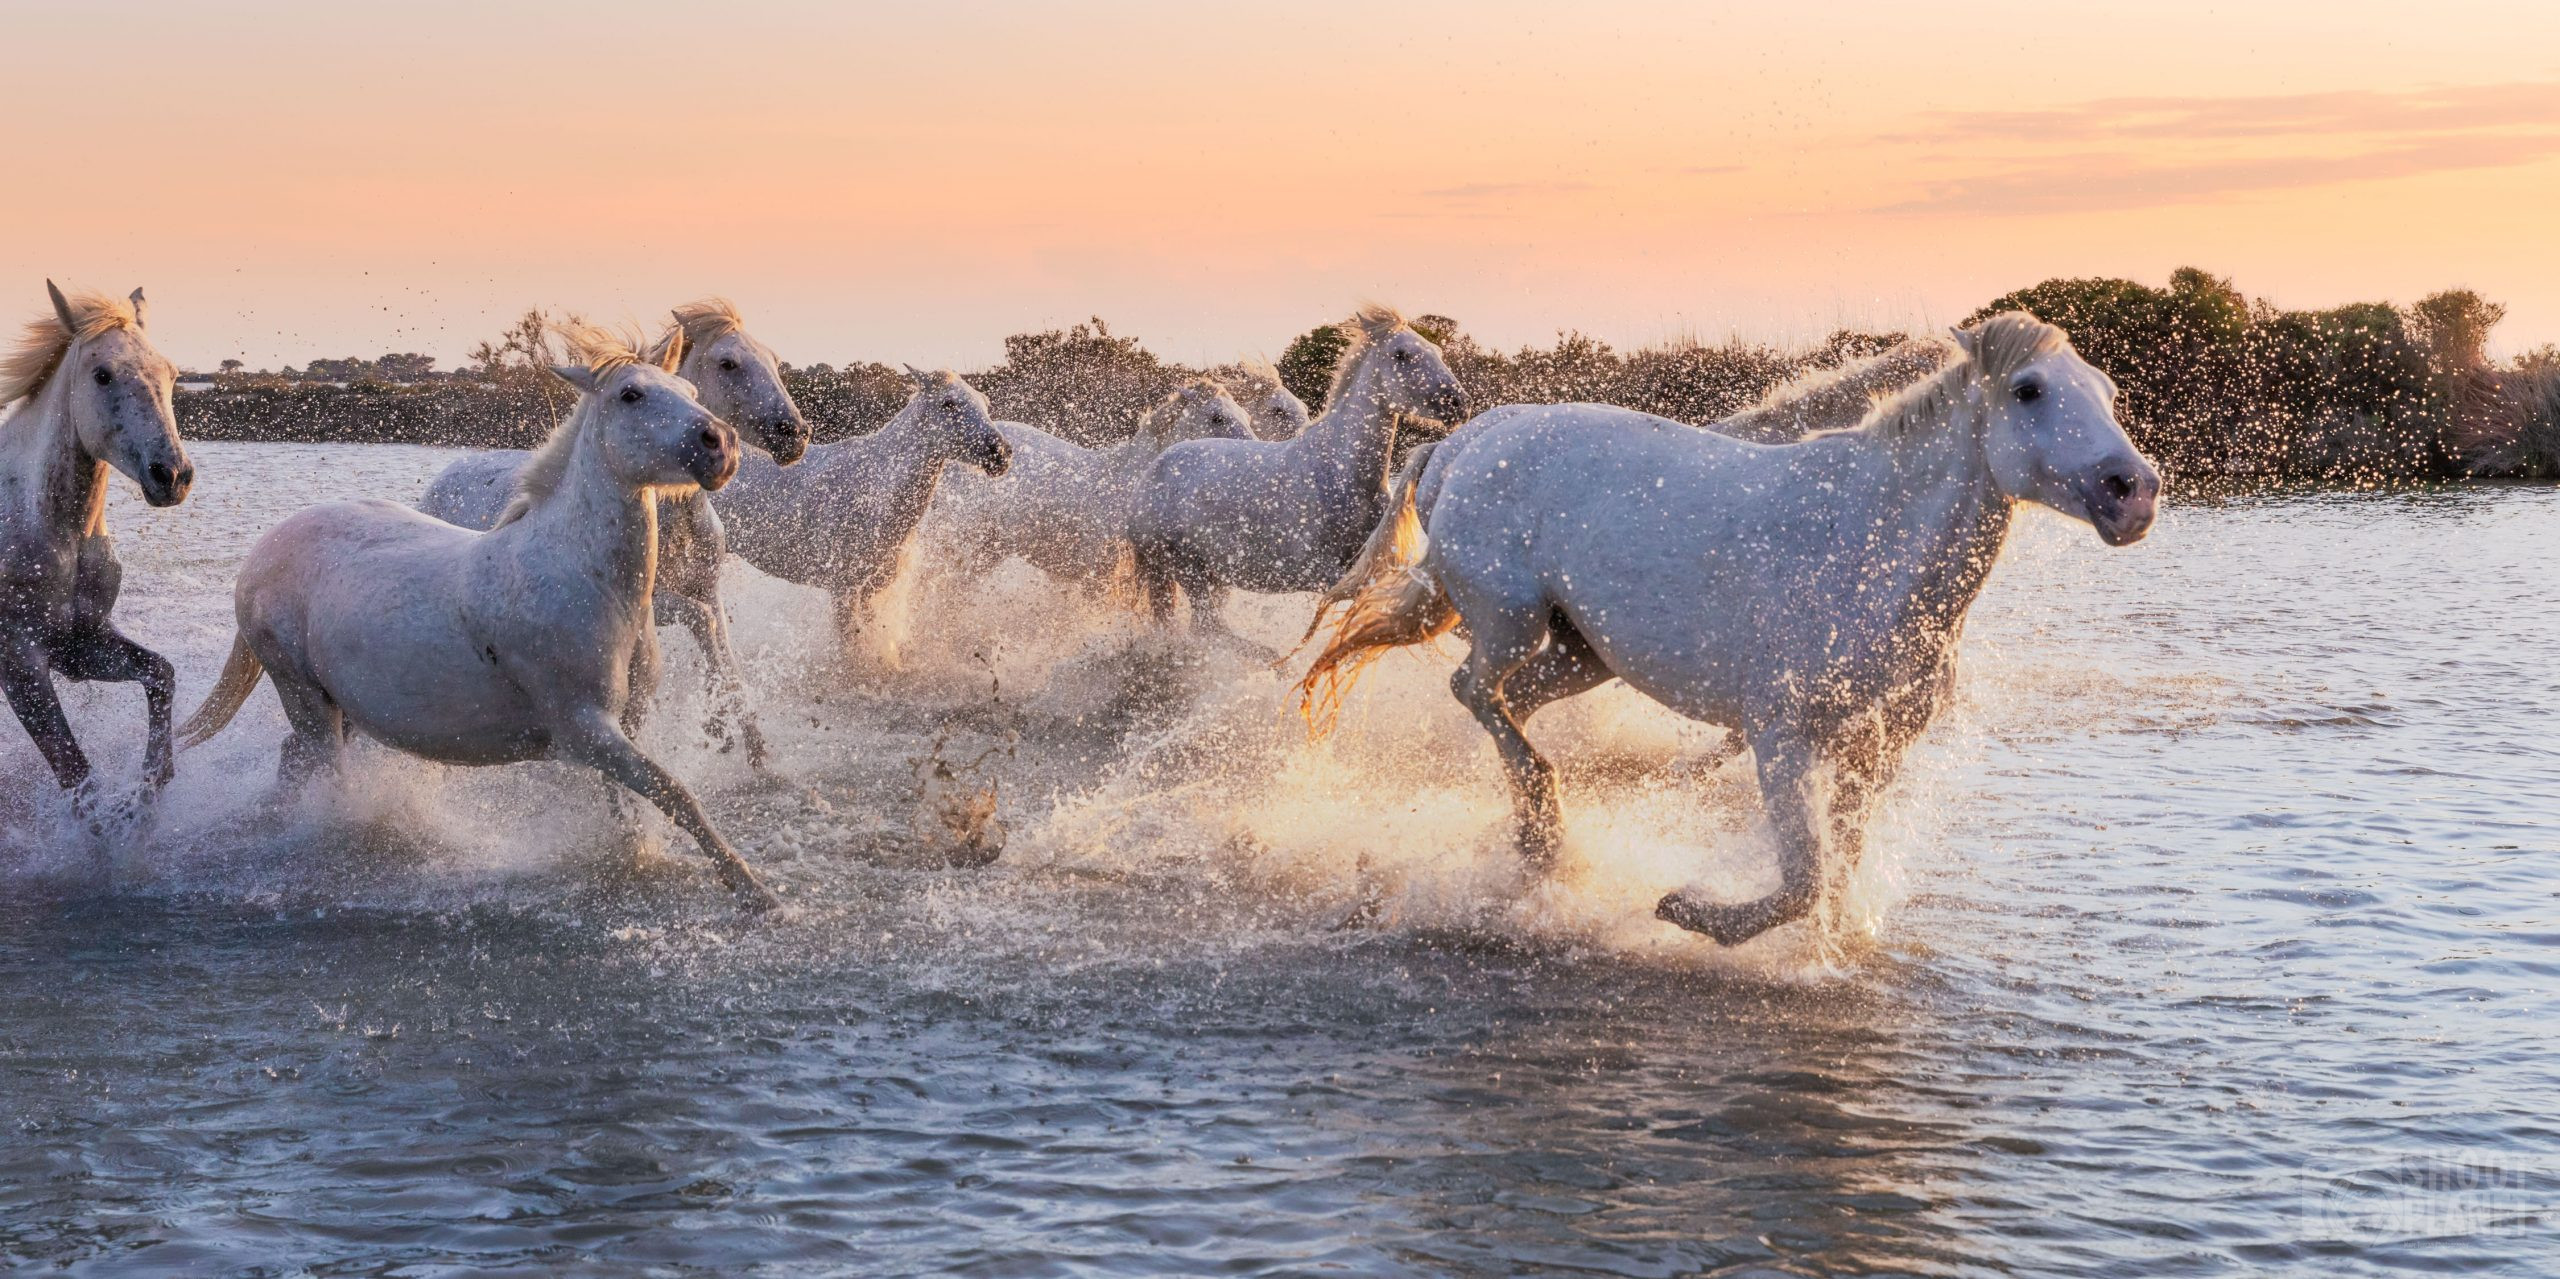 Horses galloping in a Camargue Pond, FranceHorses galloping in a Camargue Pond, France